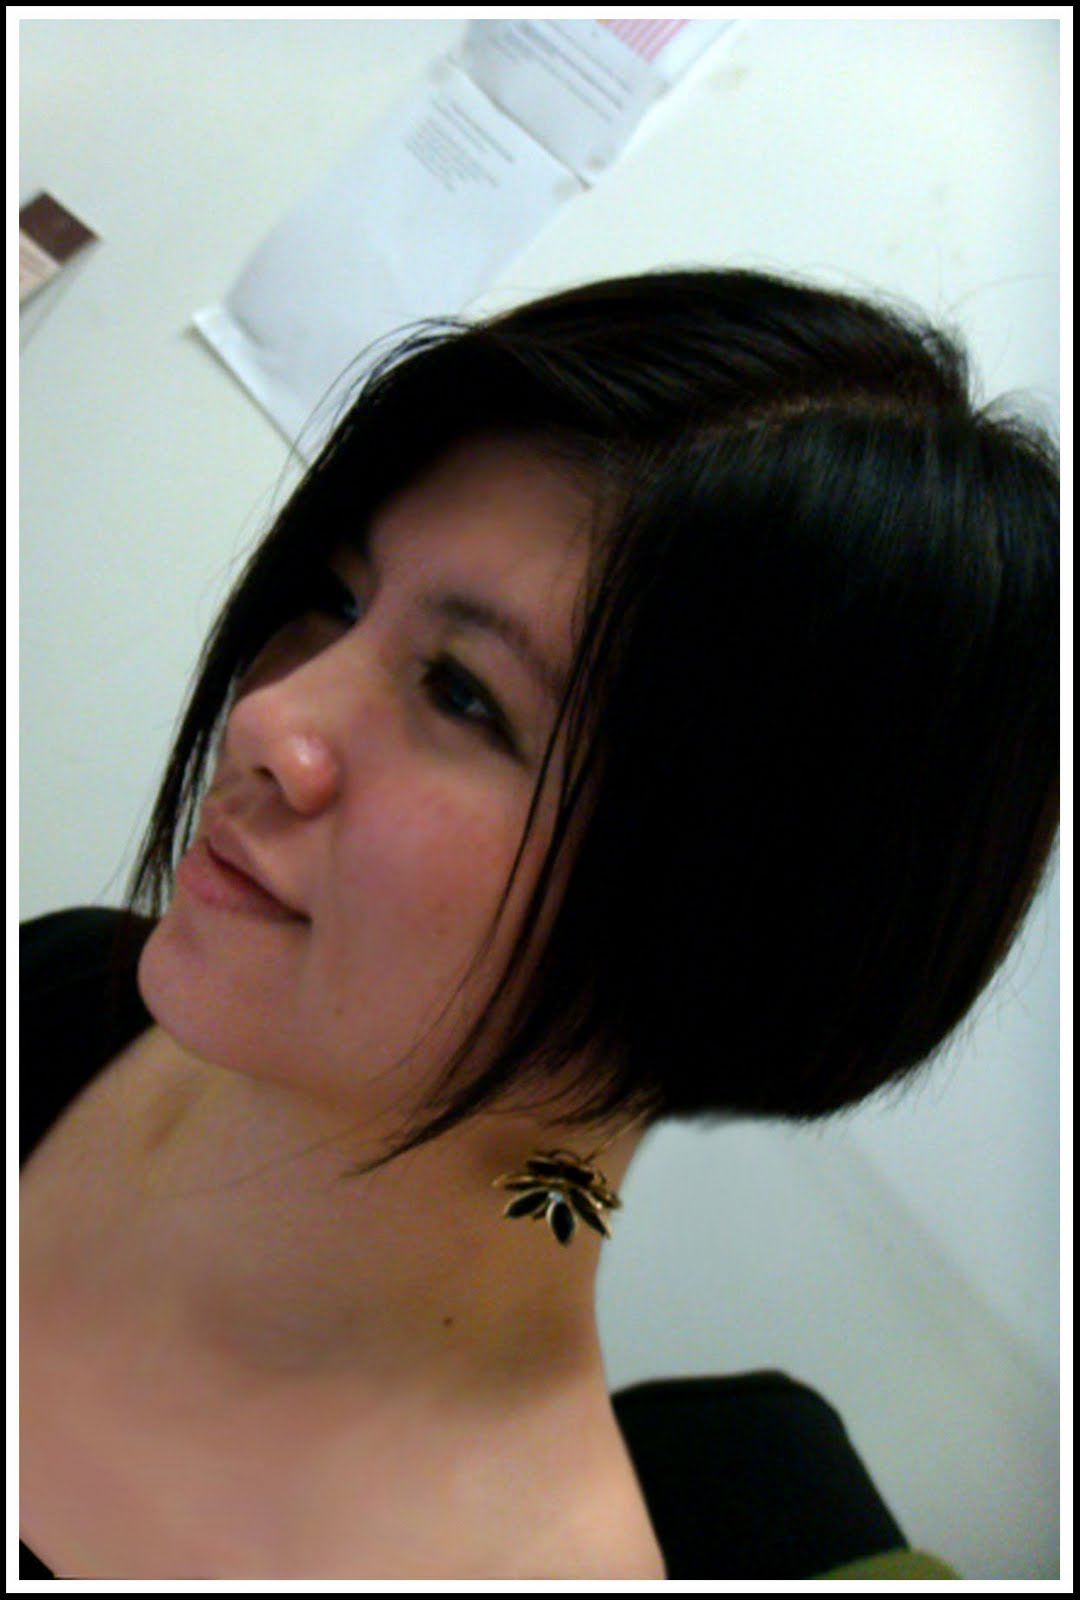 Filename: eiling new hairstyle may 2010.jpg - Queue Hairstyle Images - Reverse Search